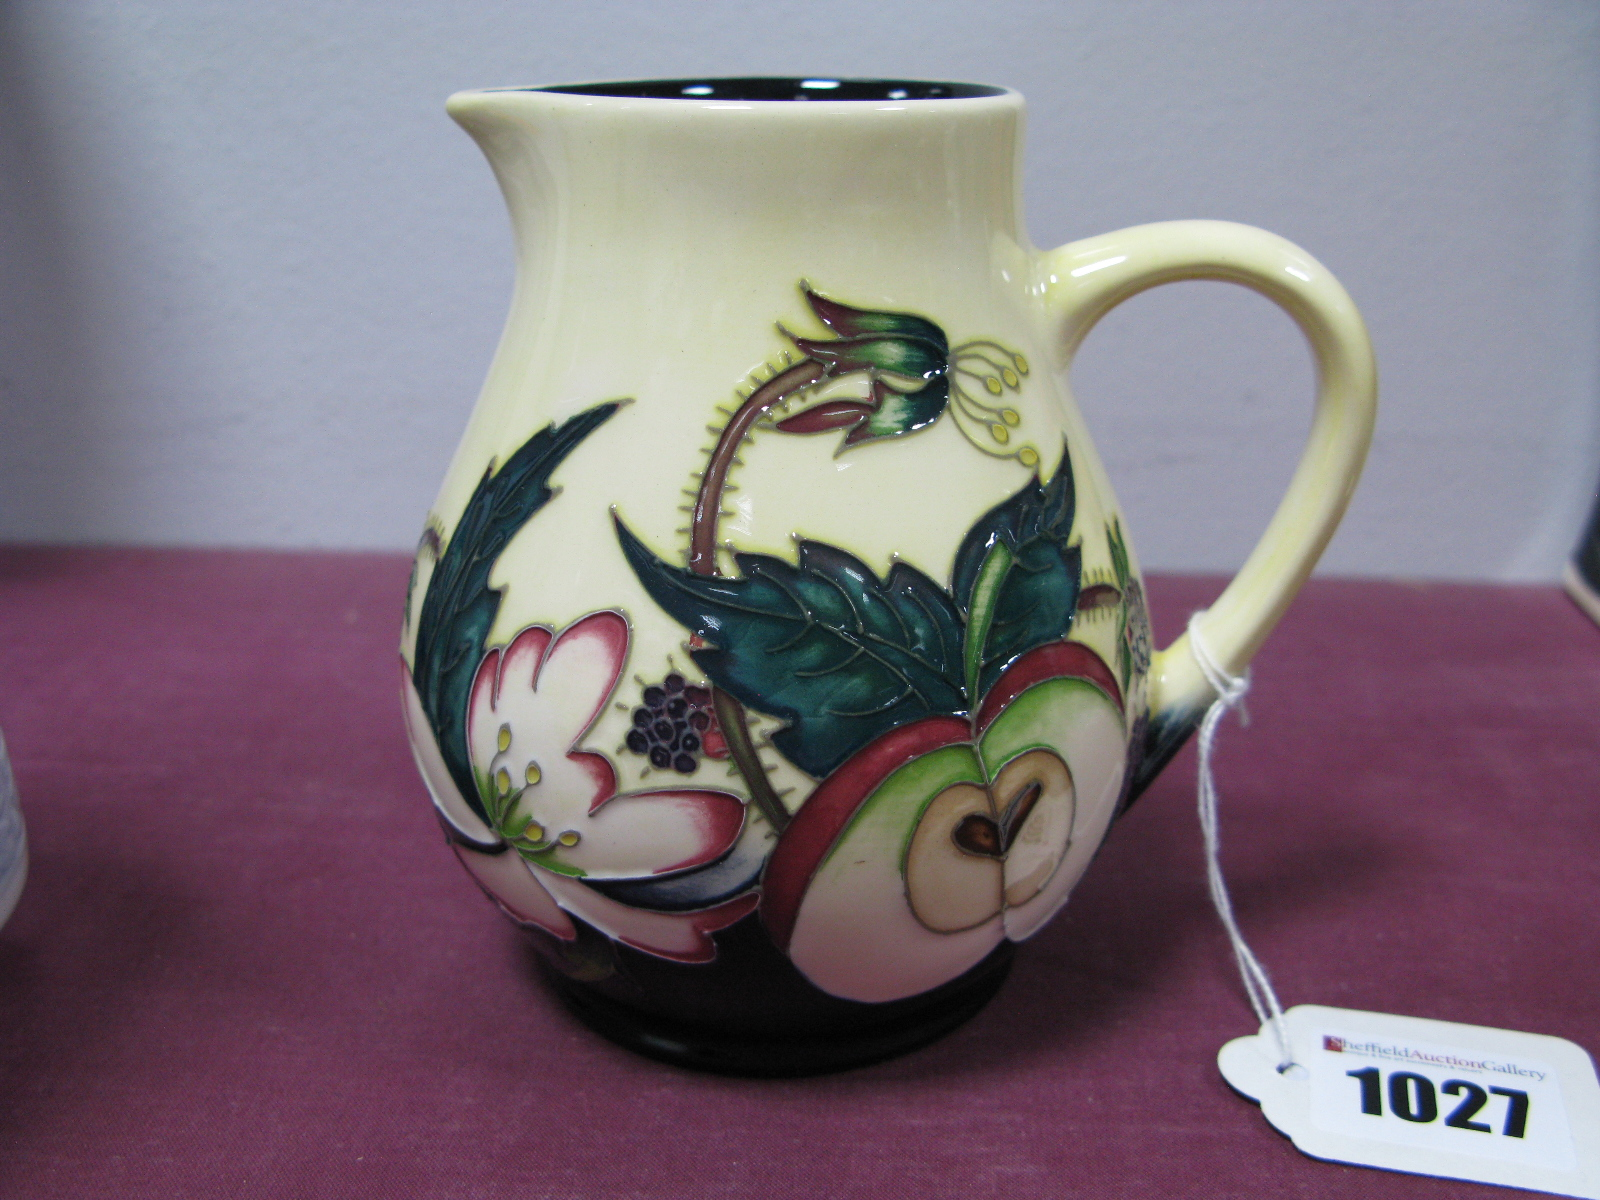 Lot 1027 - A Moorcroft 'Blackberries and Apple' Jug, shape JU2, 'Trial 10.6.16. 11.5cm high.